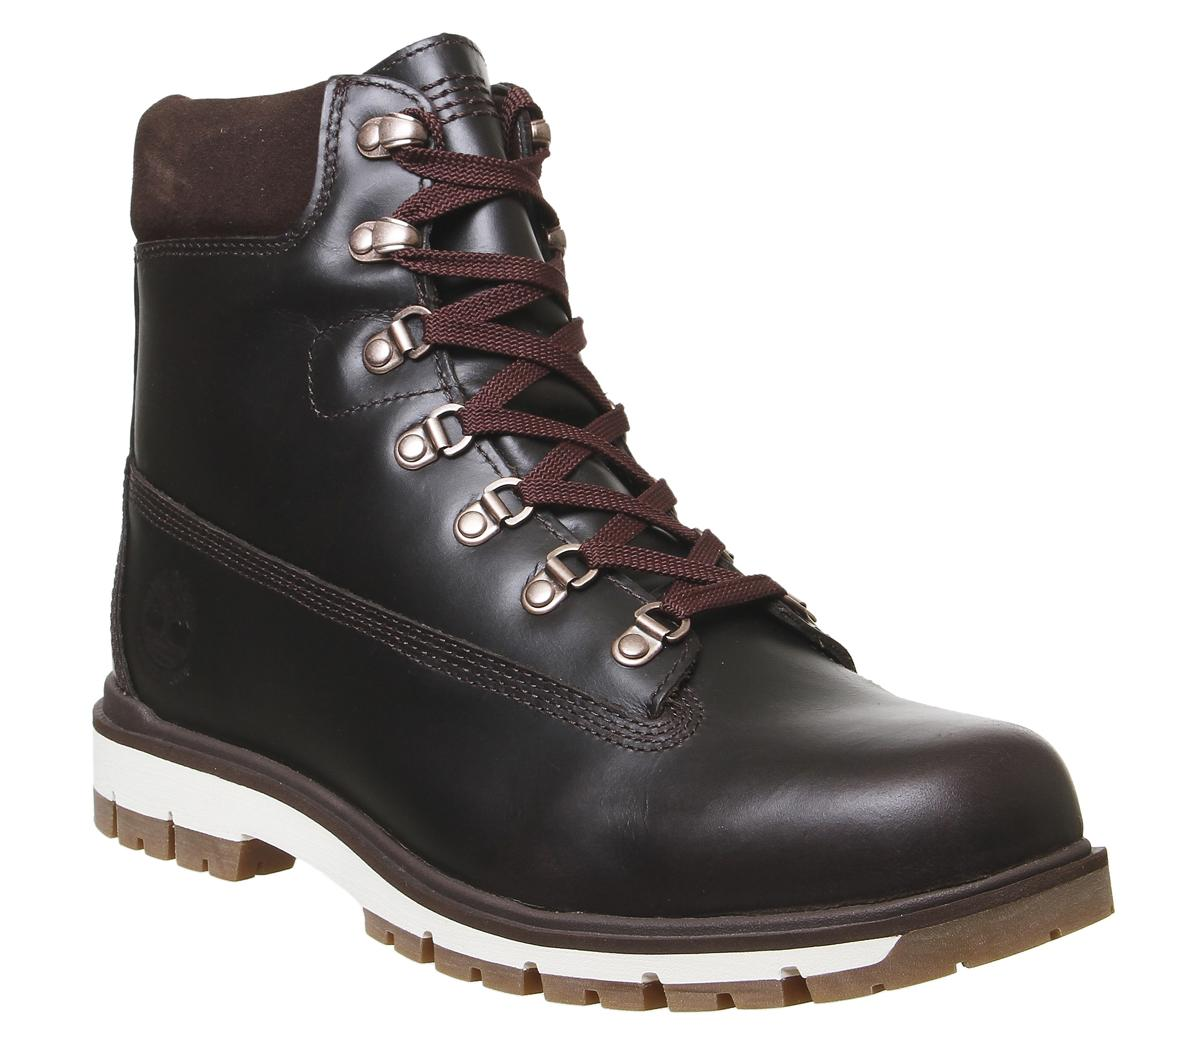 Radford Waterproof Boots